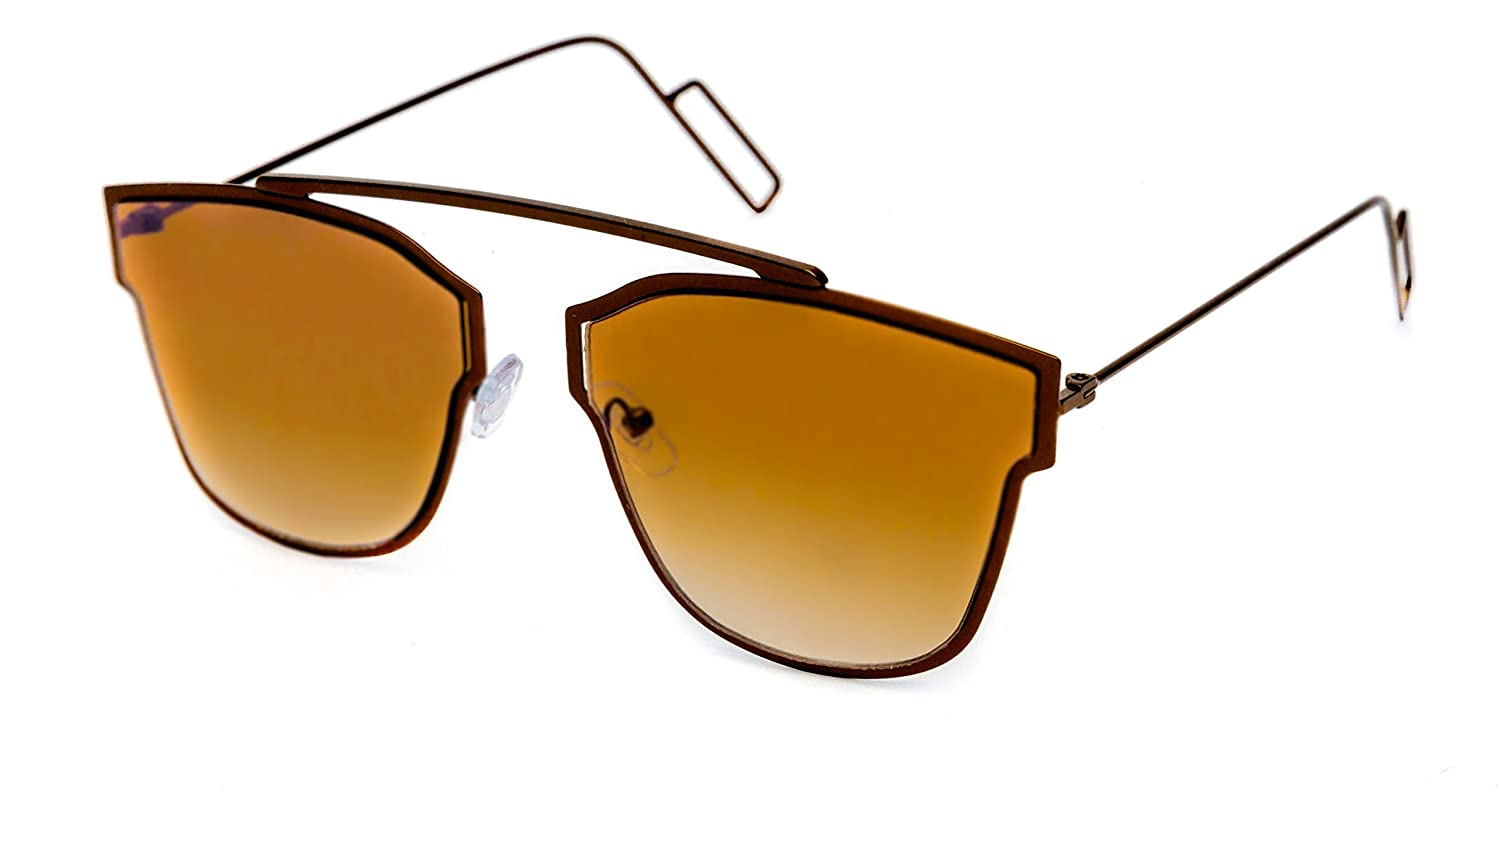 f900574690c TheWhoop UV Protected Stylish New Aviator Unisex Sunglasses (Brown)   Amazon.in  Clothing   Accessories